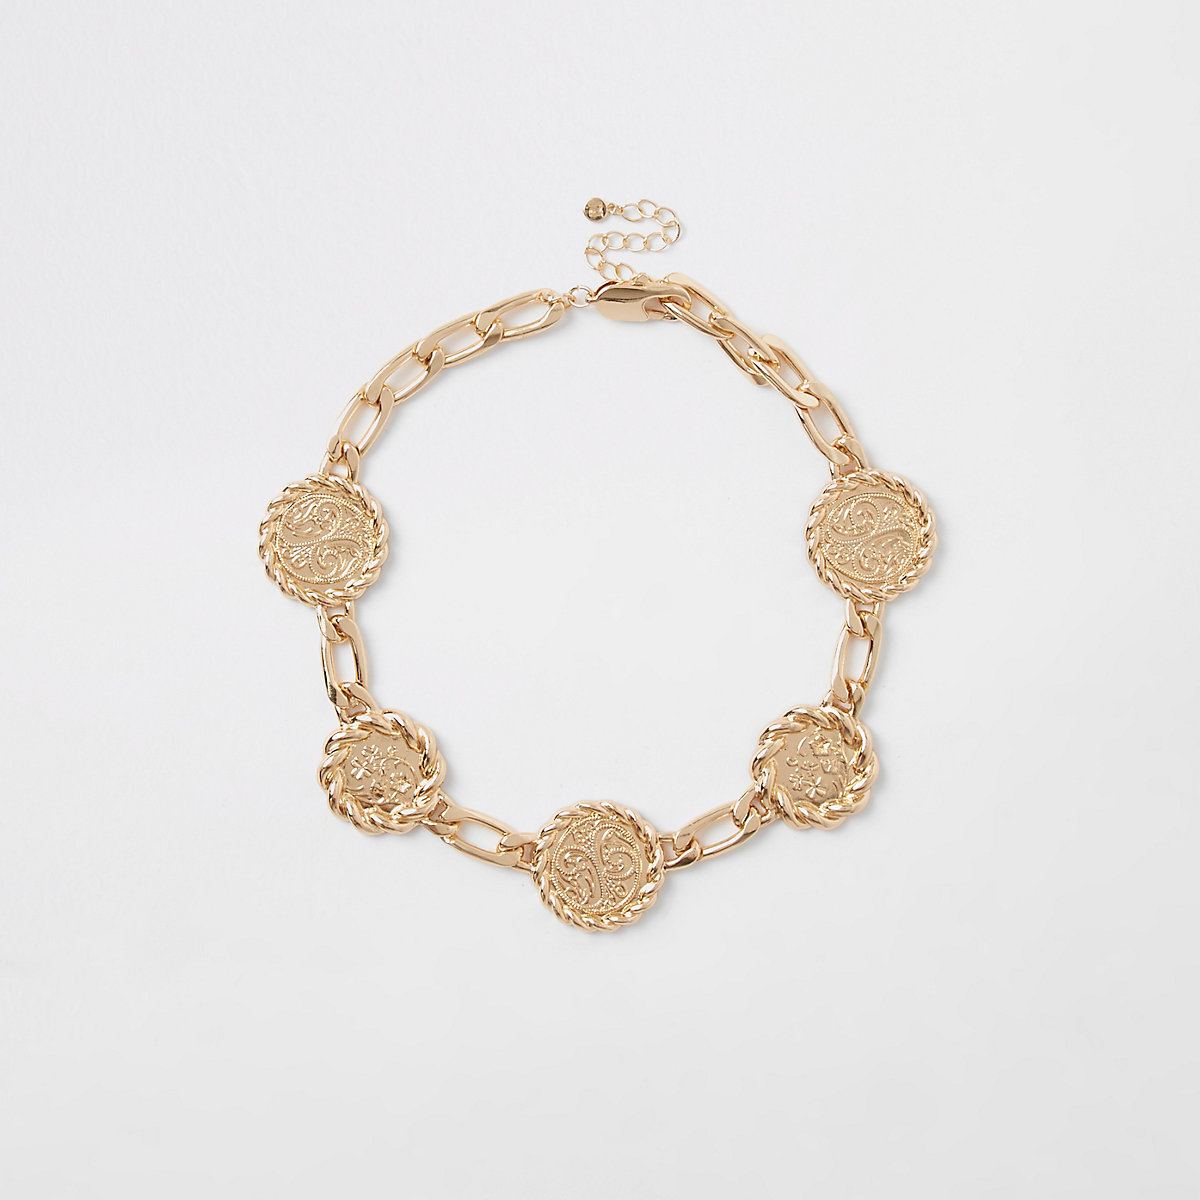 Gold tone medallion chain necklace